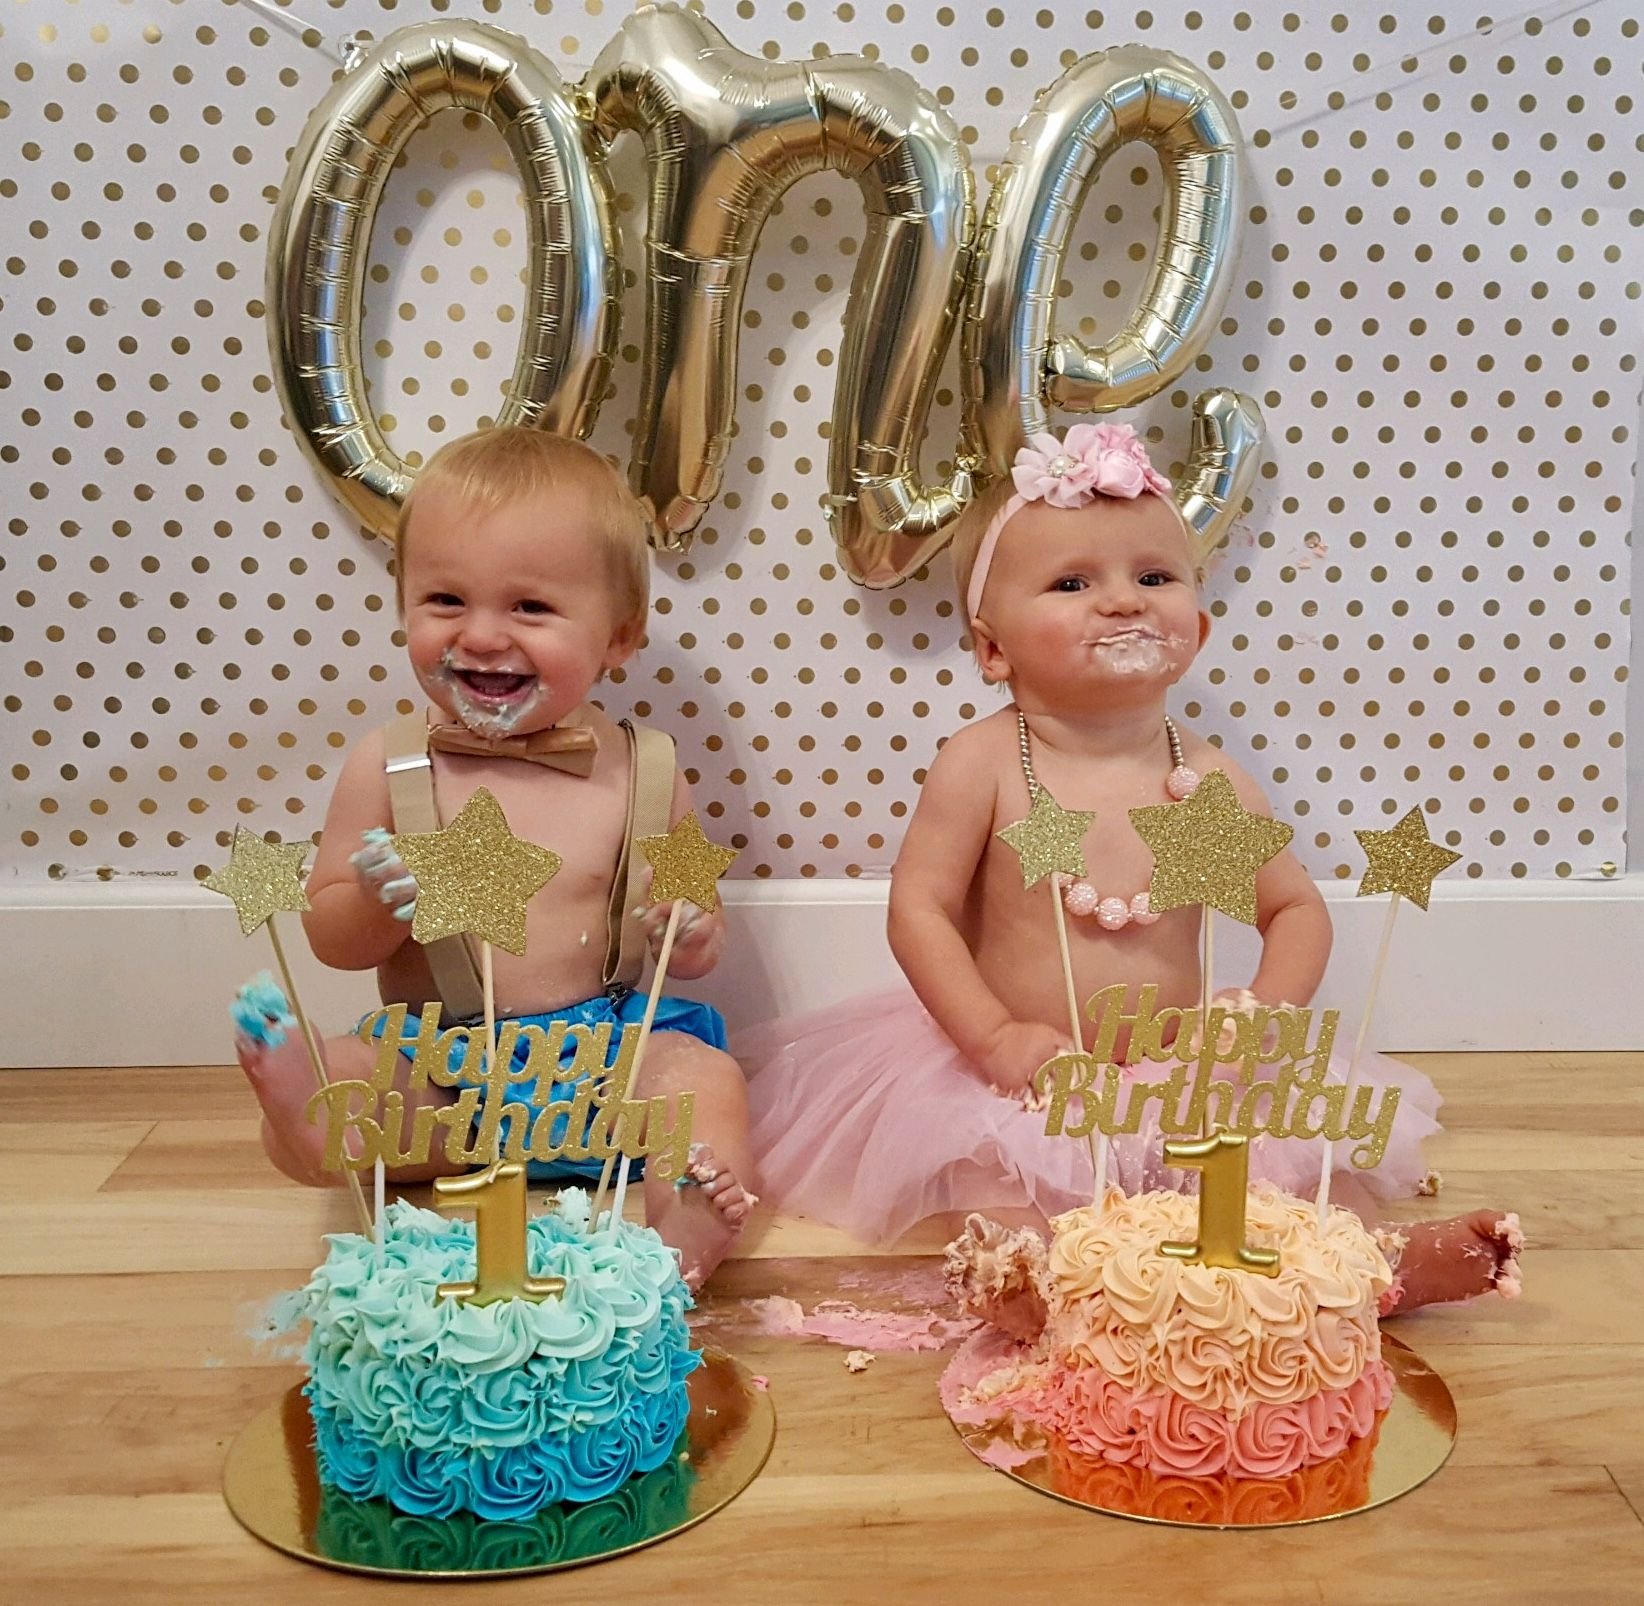 One Year Old Twins Cake Smash Twin Birthday Cakes Twins Cake